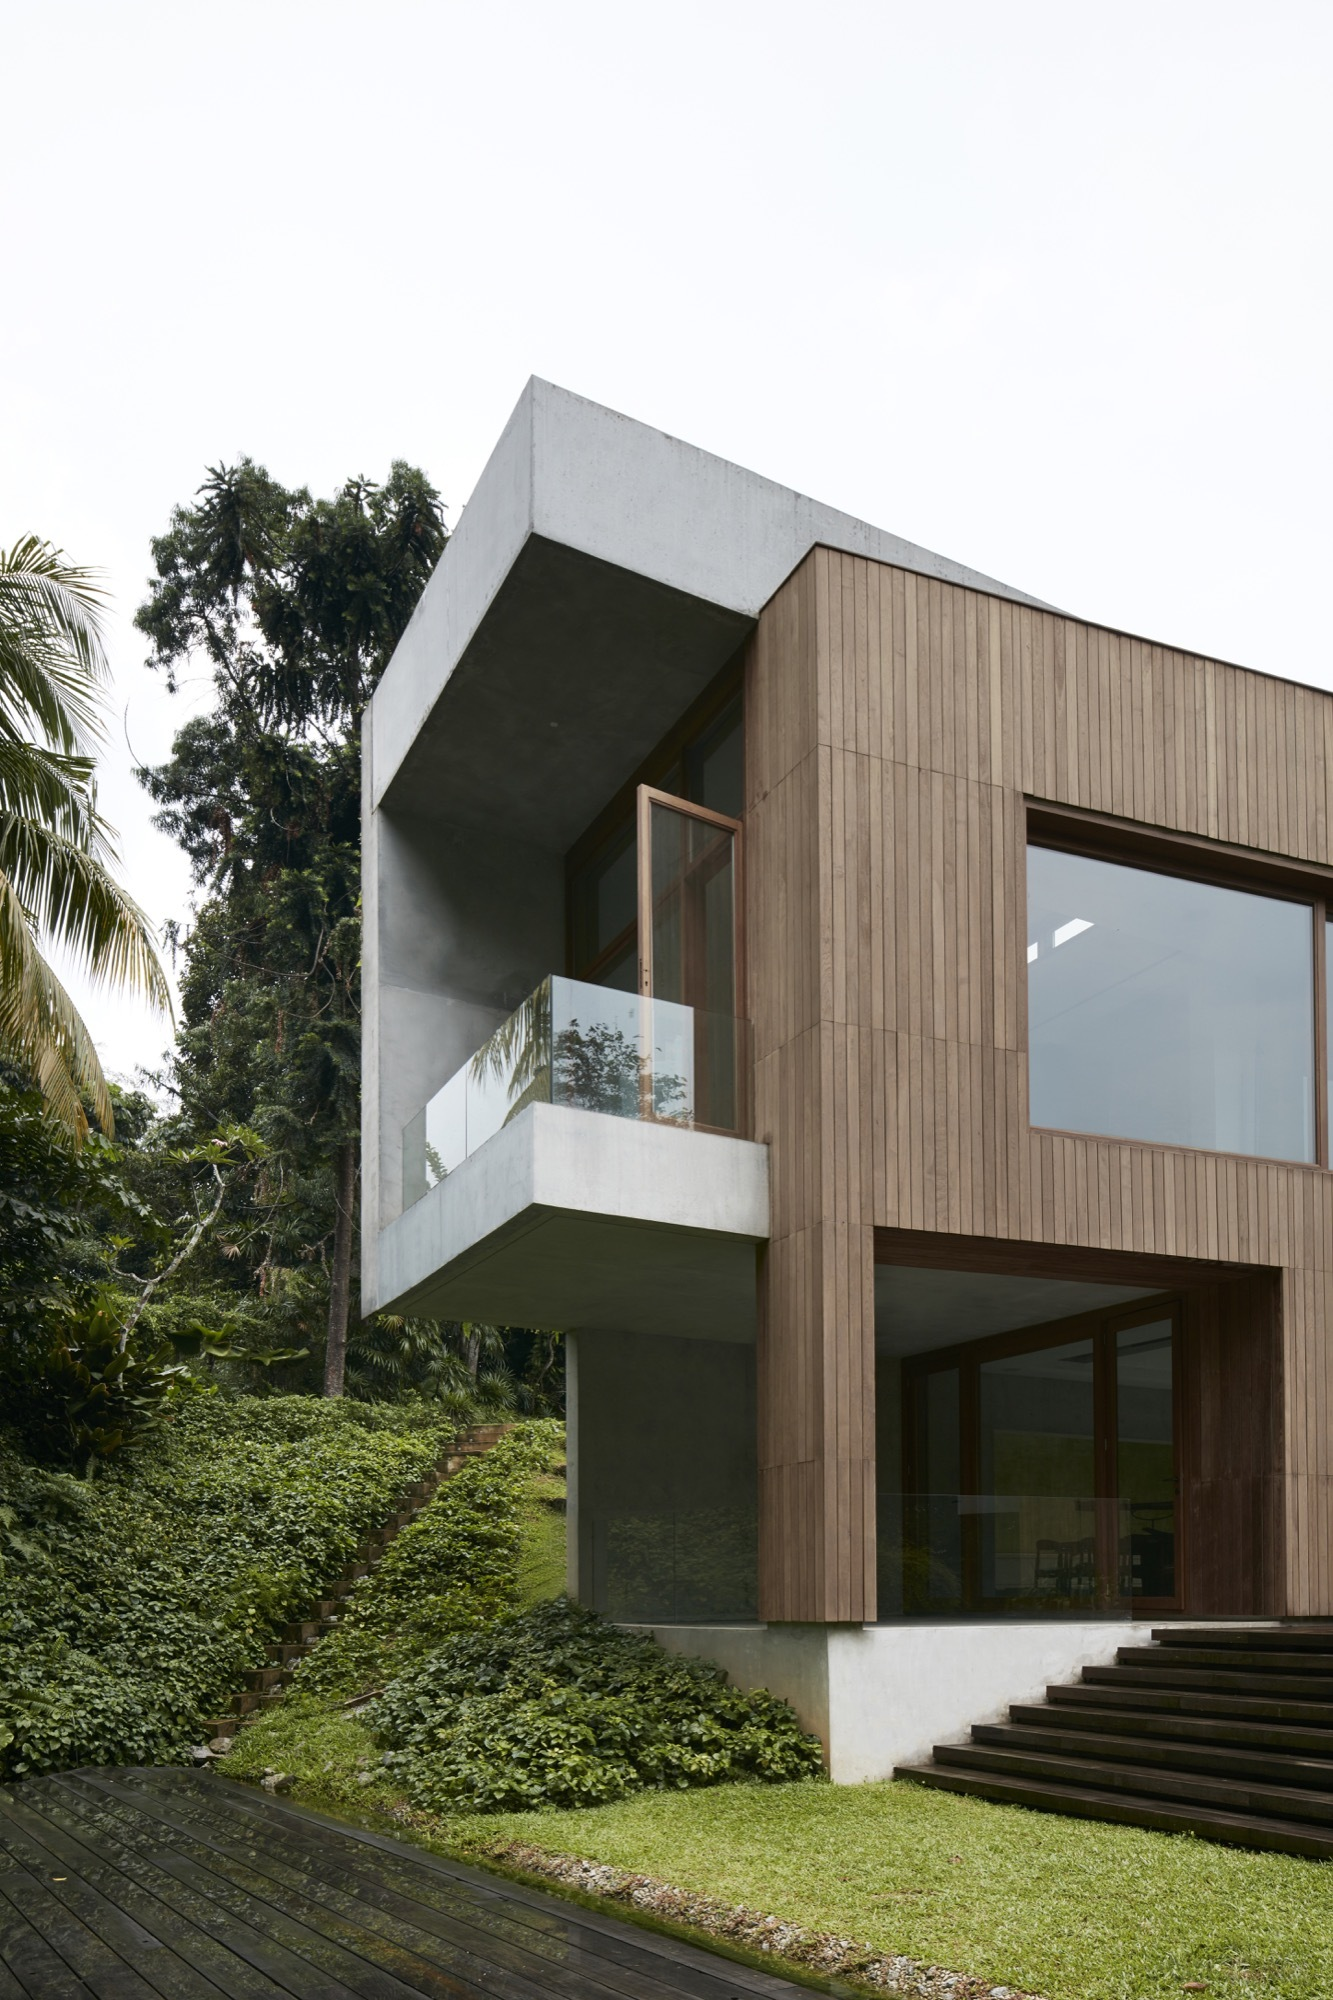 House design hilly area - Richard Bryant